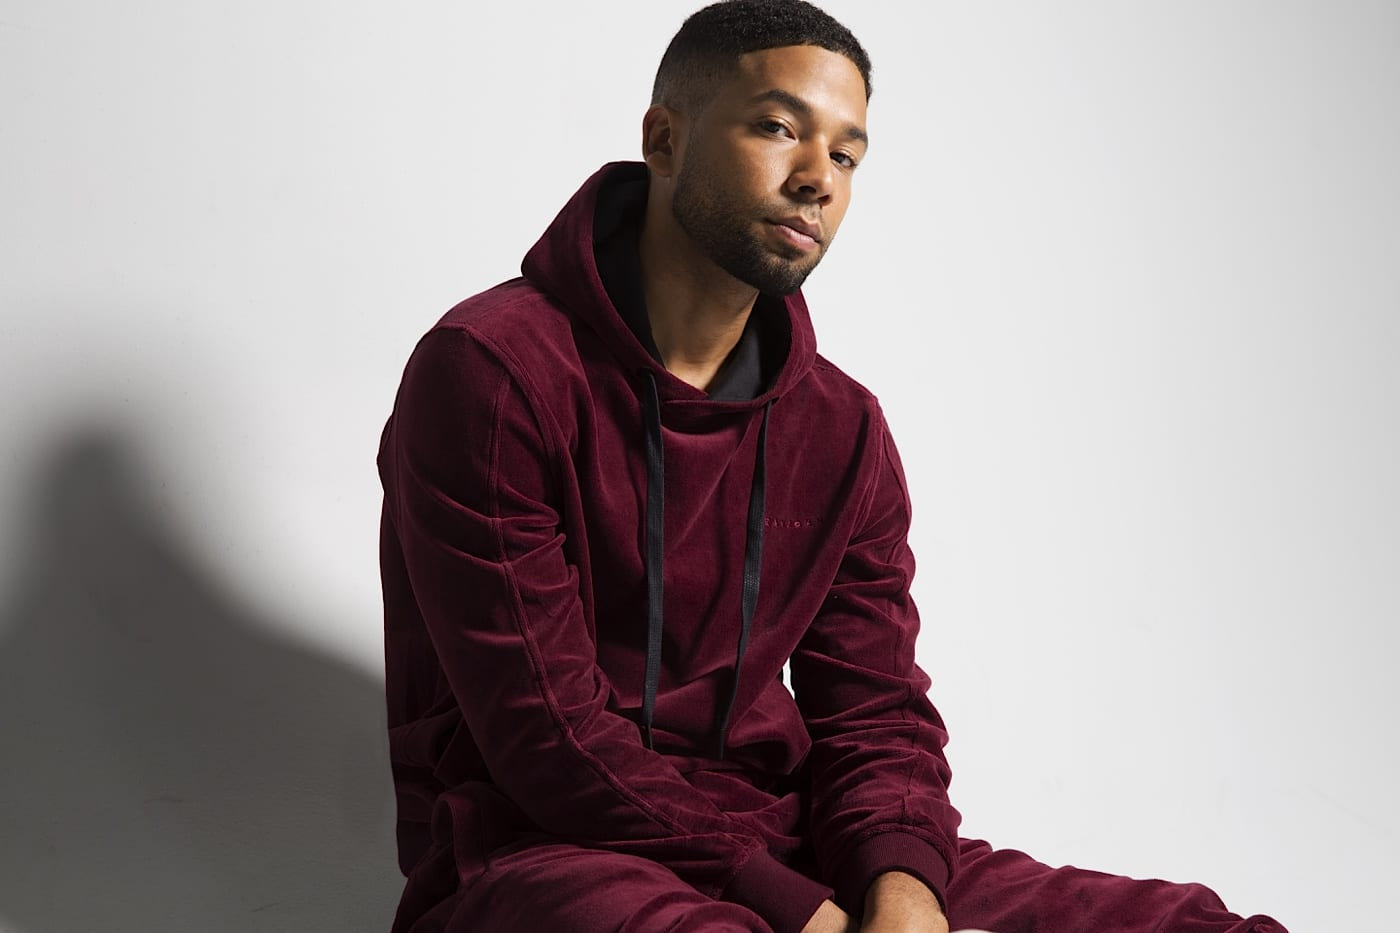 Jussie Smollett's Family Speak out in Wake of 'Cowardly' Attack